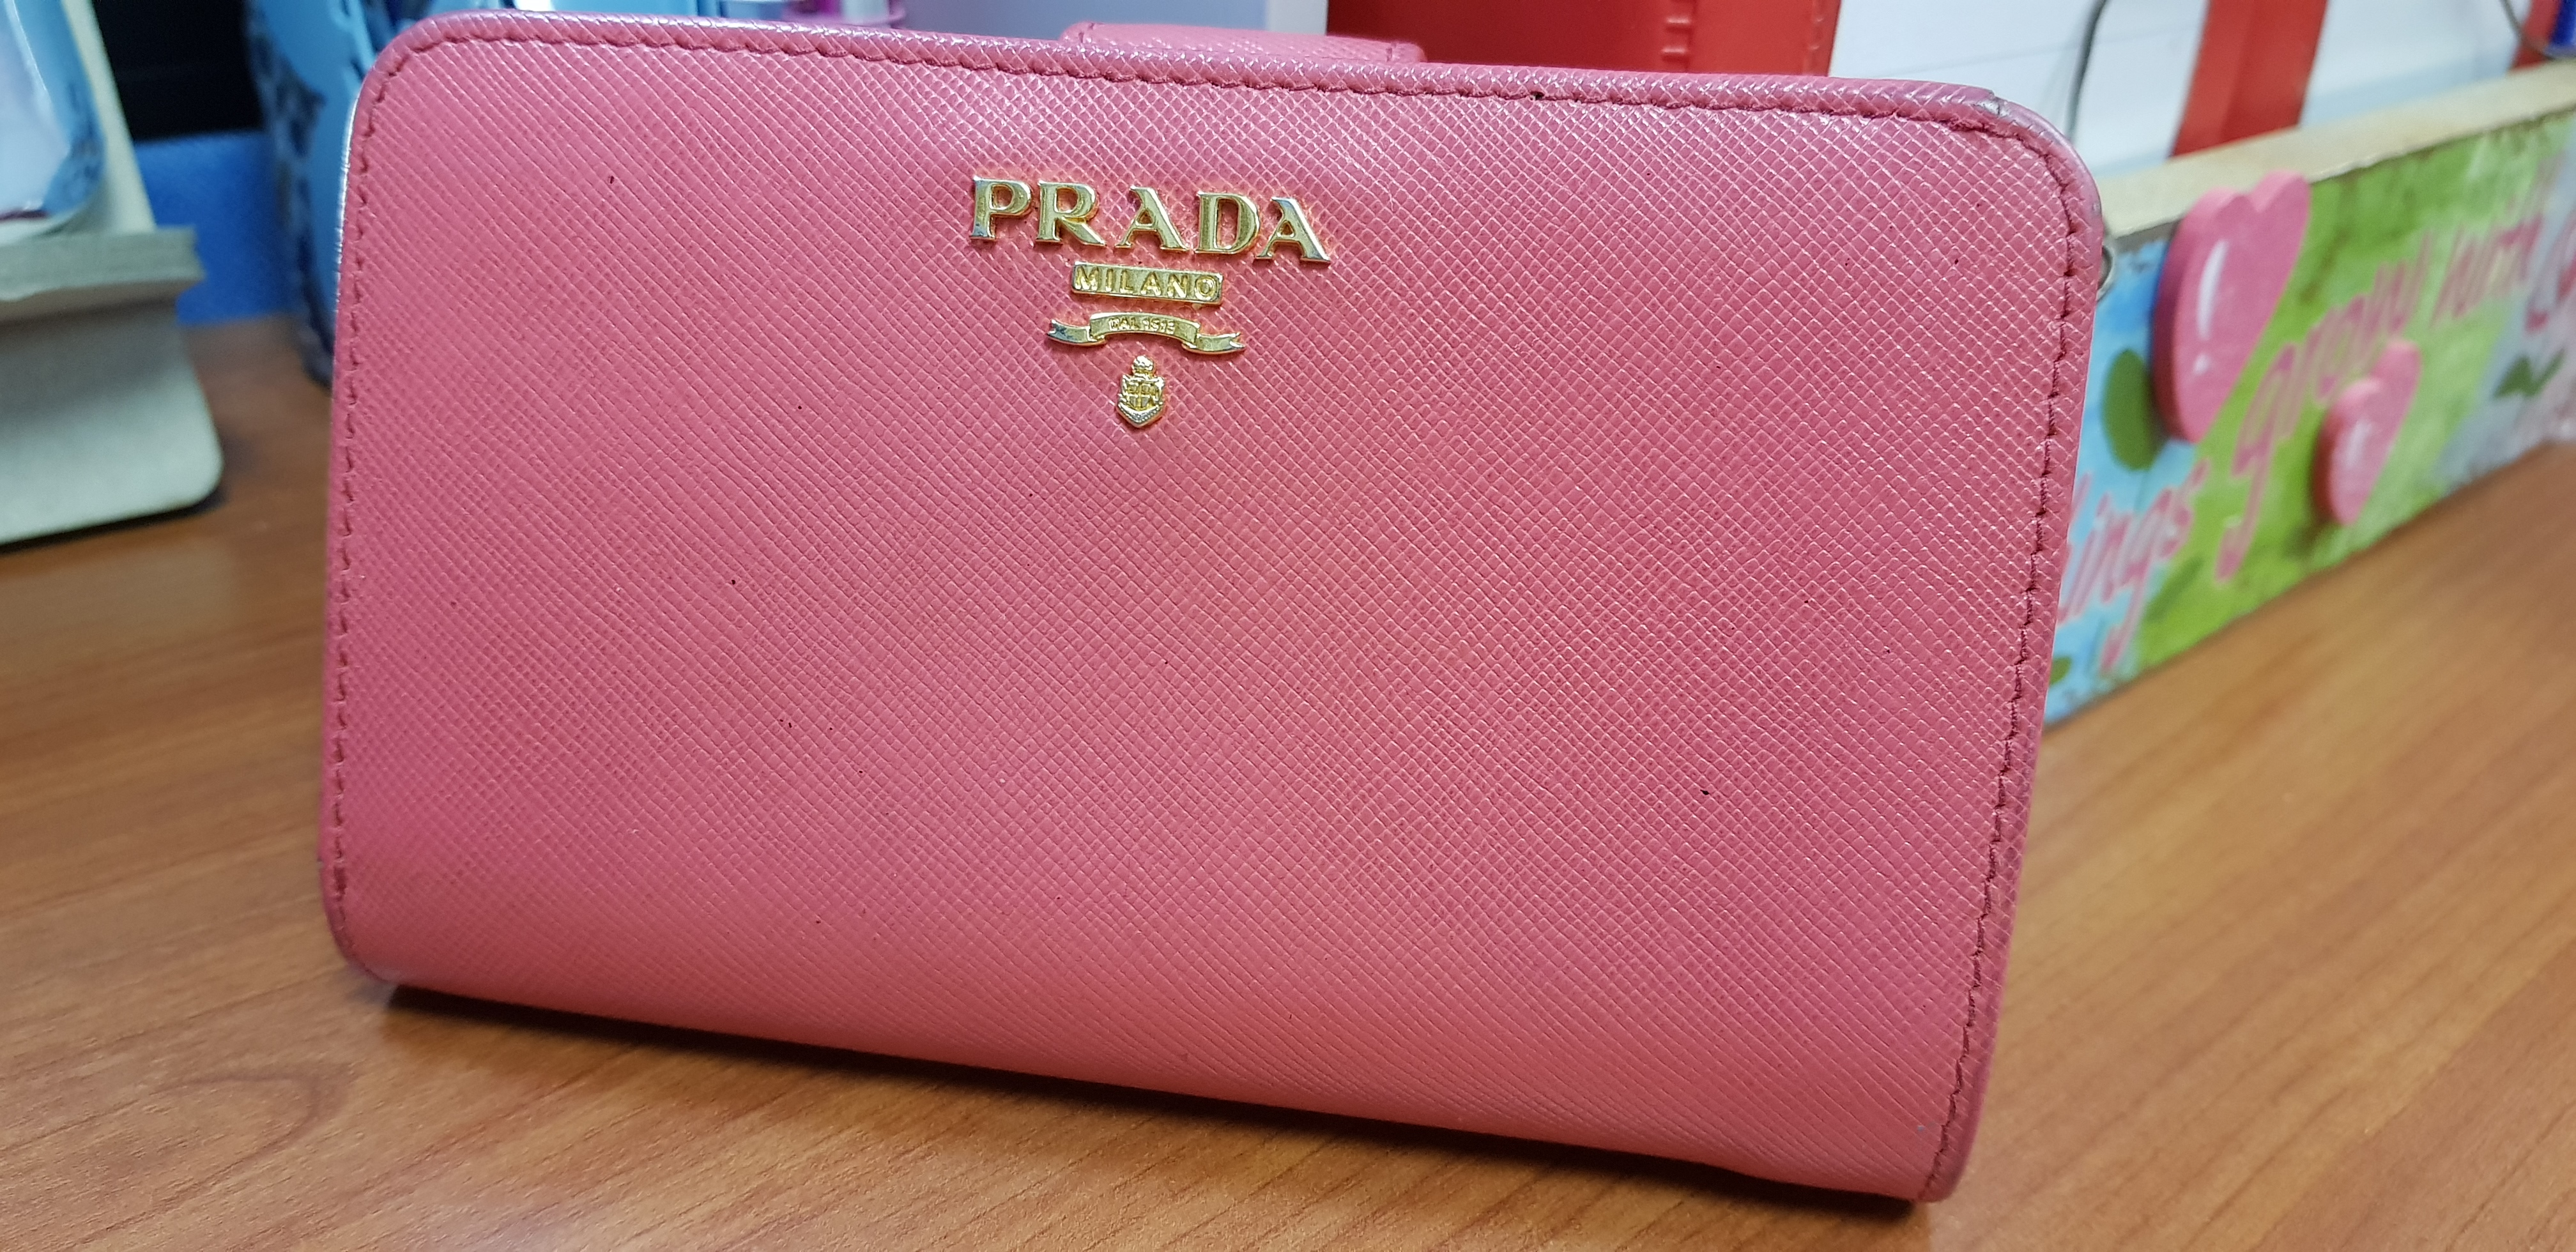 4338c3fd805f Prada 1ML225 Saffiano Leather French Wallet with Coin Zip Pocket-